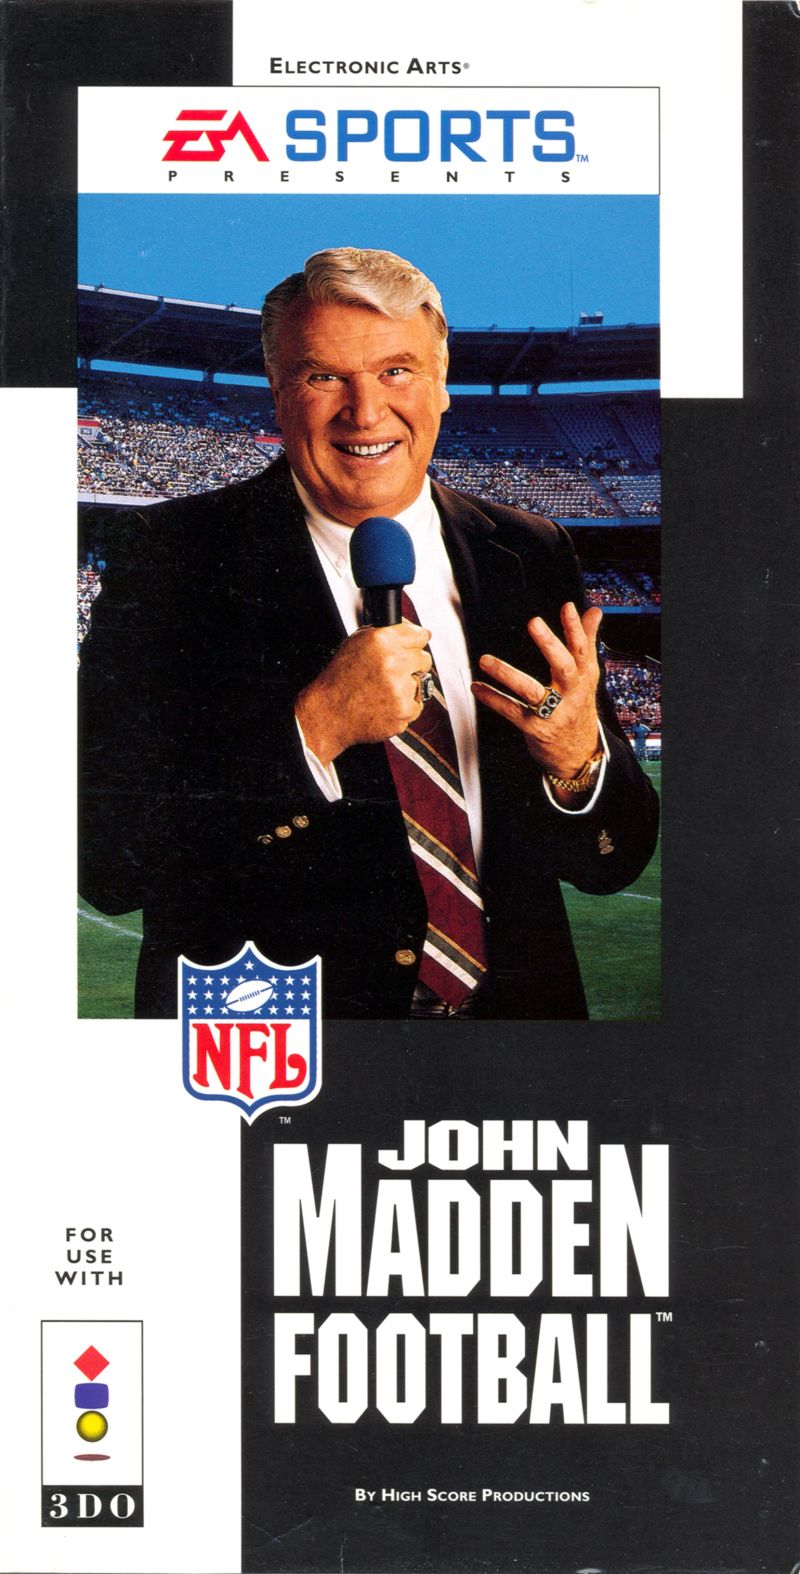 John Madden Football 3DO Front Cover